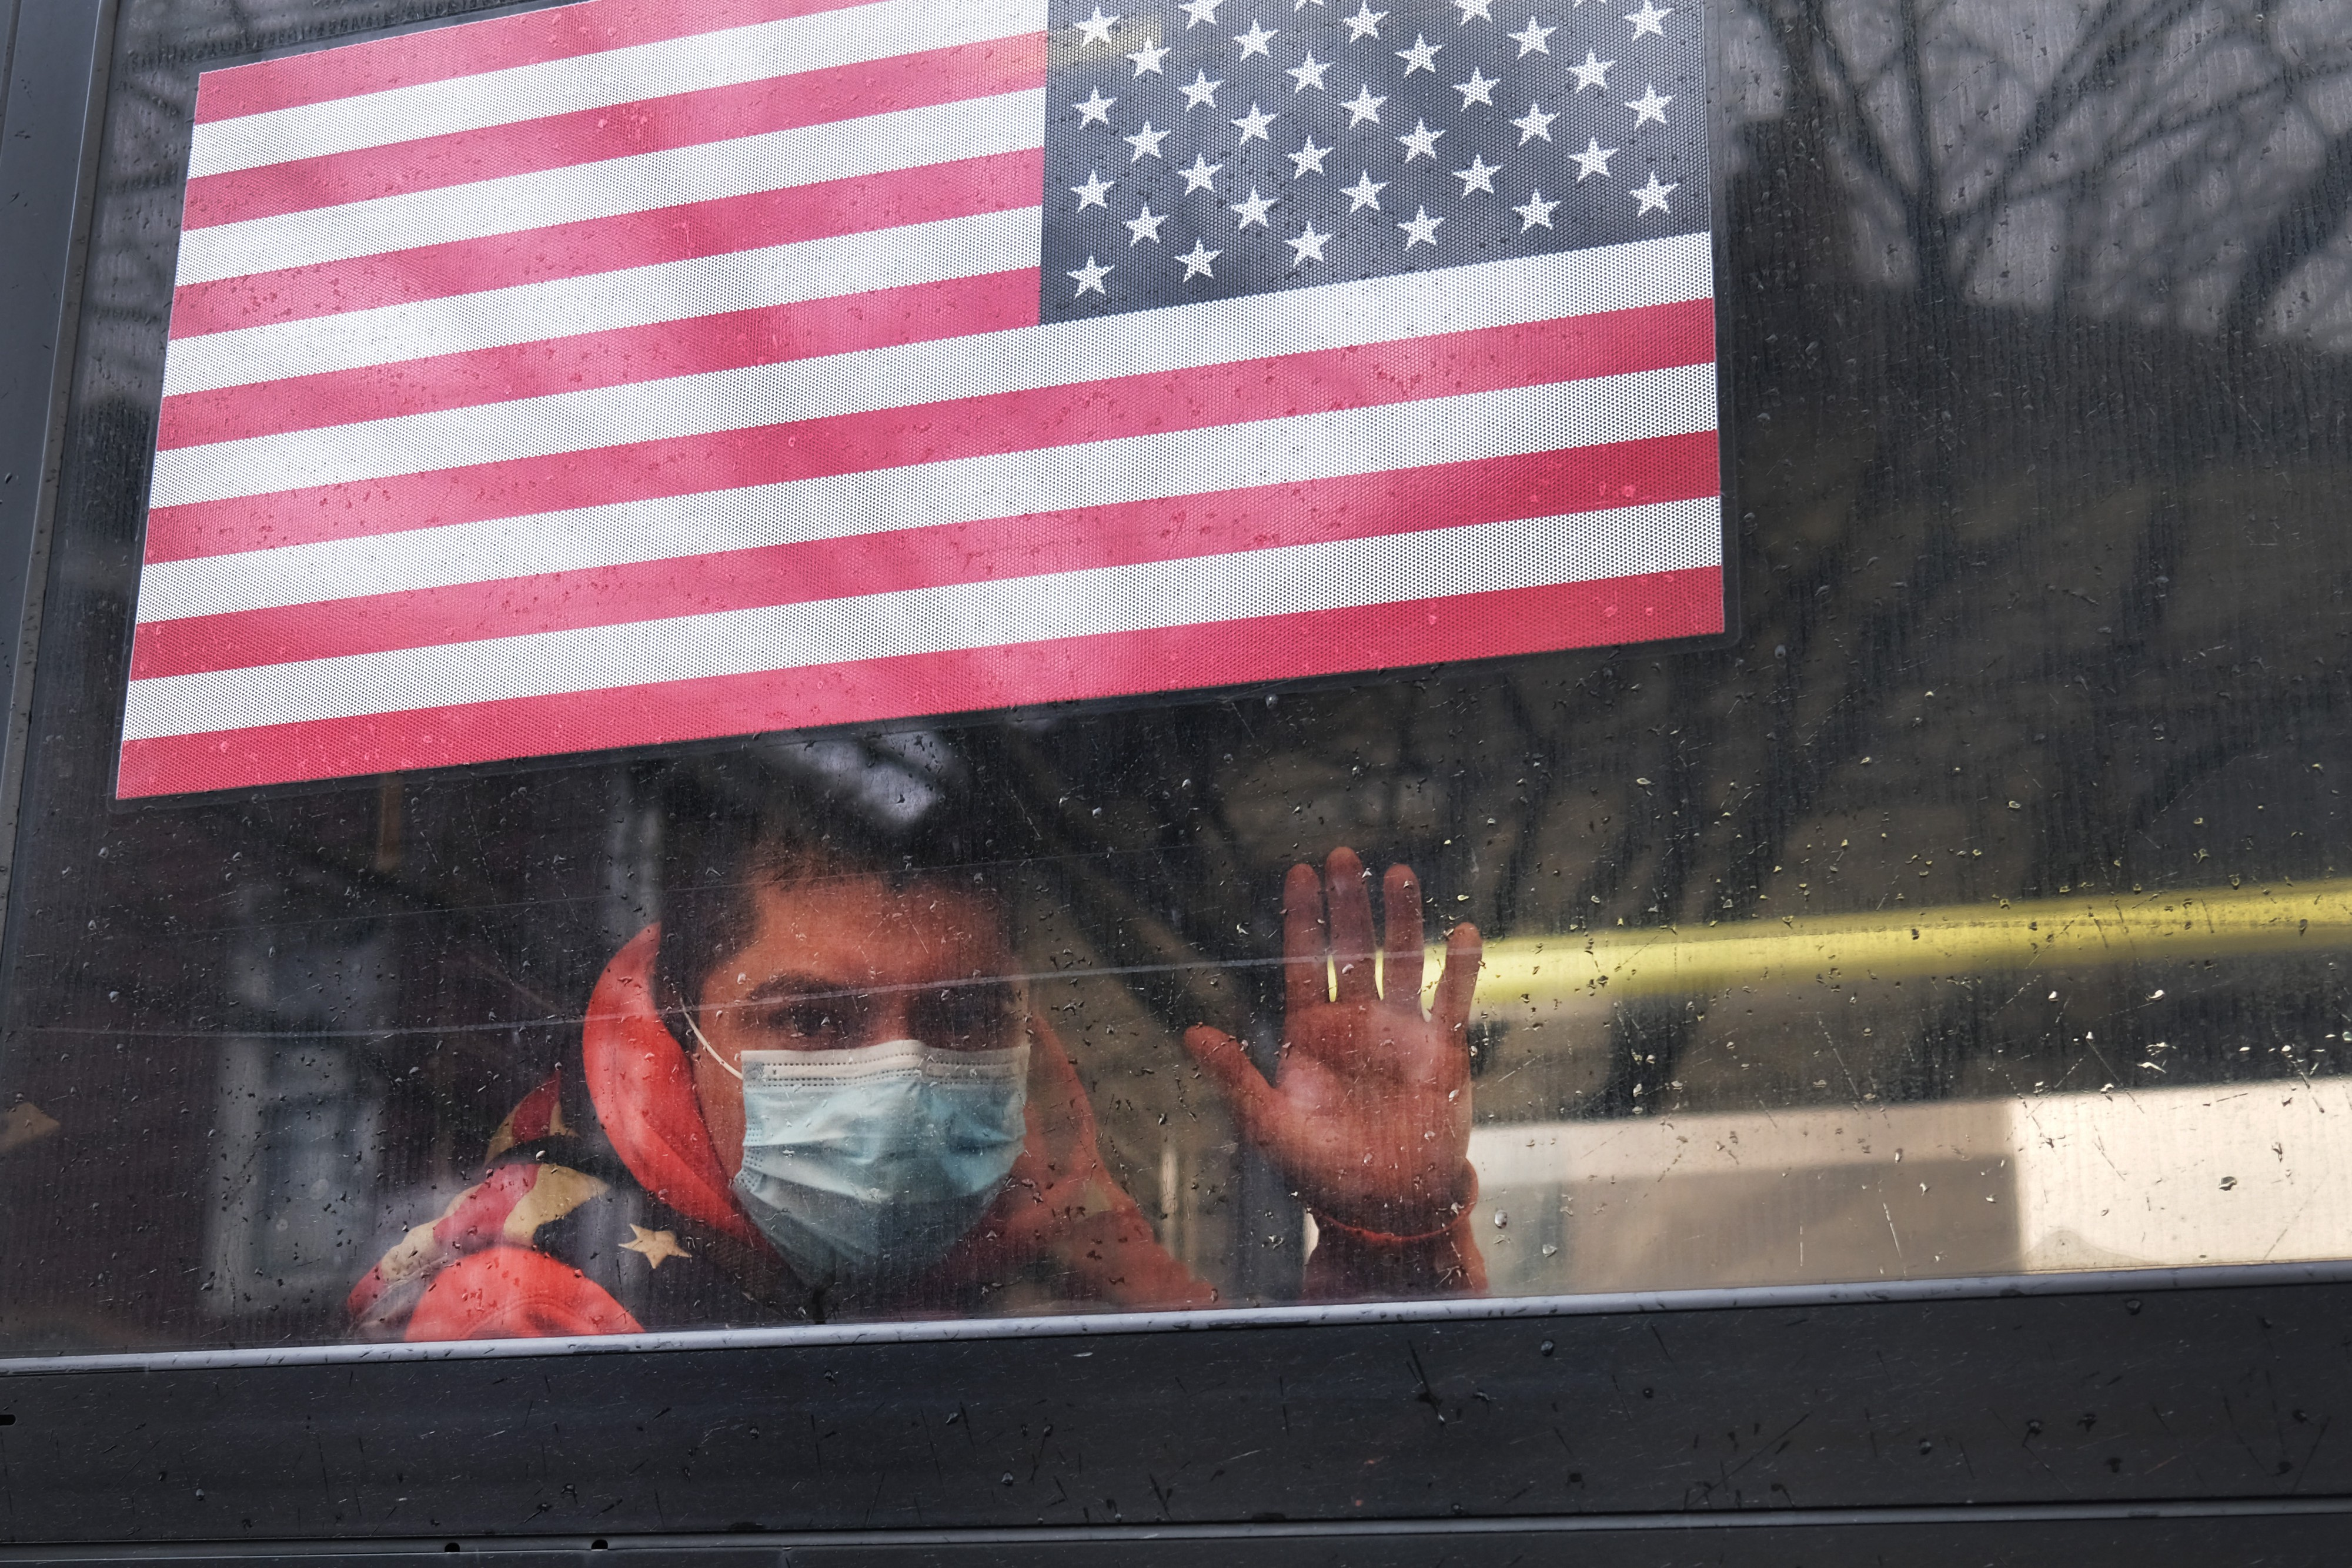 A man waves from a bus in a neighborhood in the Queens borough, which has one of the highest infection rates of coronavirus.